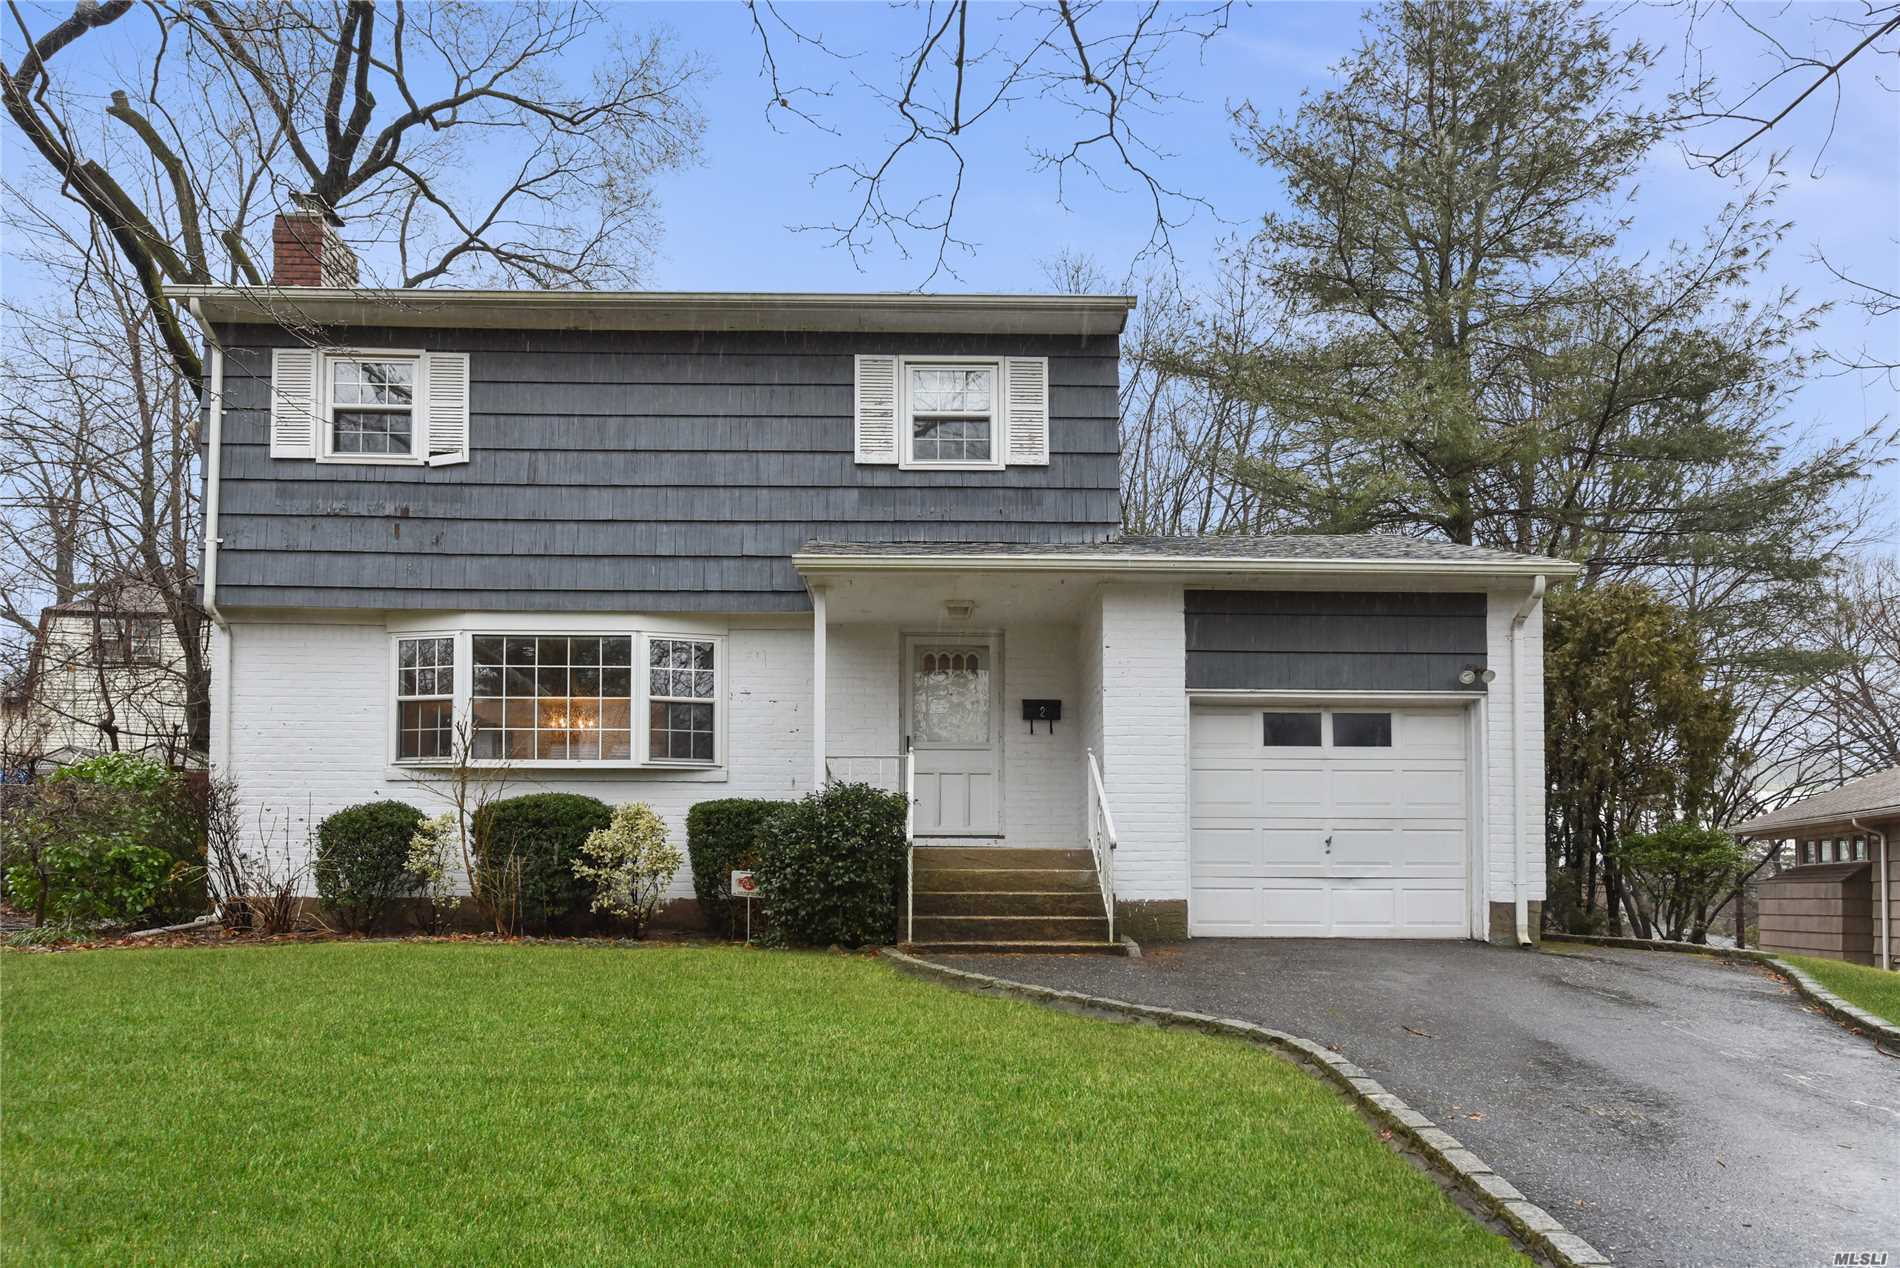 Great Neck/Thomaston Village/Up The Street From The Lirr/Side Hall Colonial/Generous Room Sizes/Sunny E + W Exposures/Clean + Ready For Your Family/Baker Or Saddle Rock/S Or N Options/Access To Parkwood Pool Complex + Stepping Stone Park/Near Town + Northern Bld For Easy Bus Transport/Everything Good To Make This A Lovely Home/Nice Backyard/Unique Irregular Lot/You're Invited To Visit + Fall In Love/